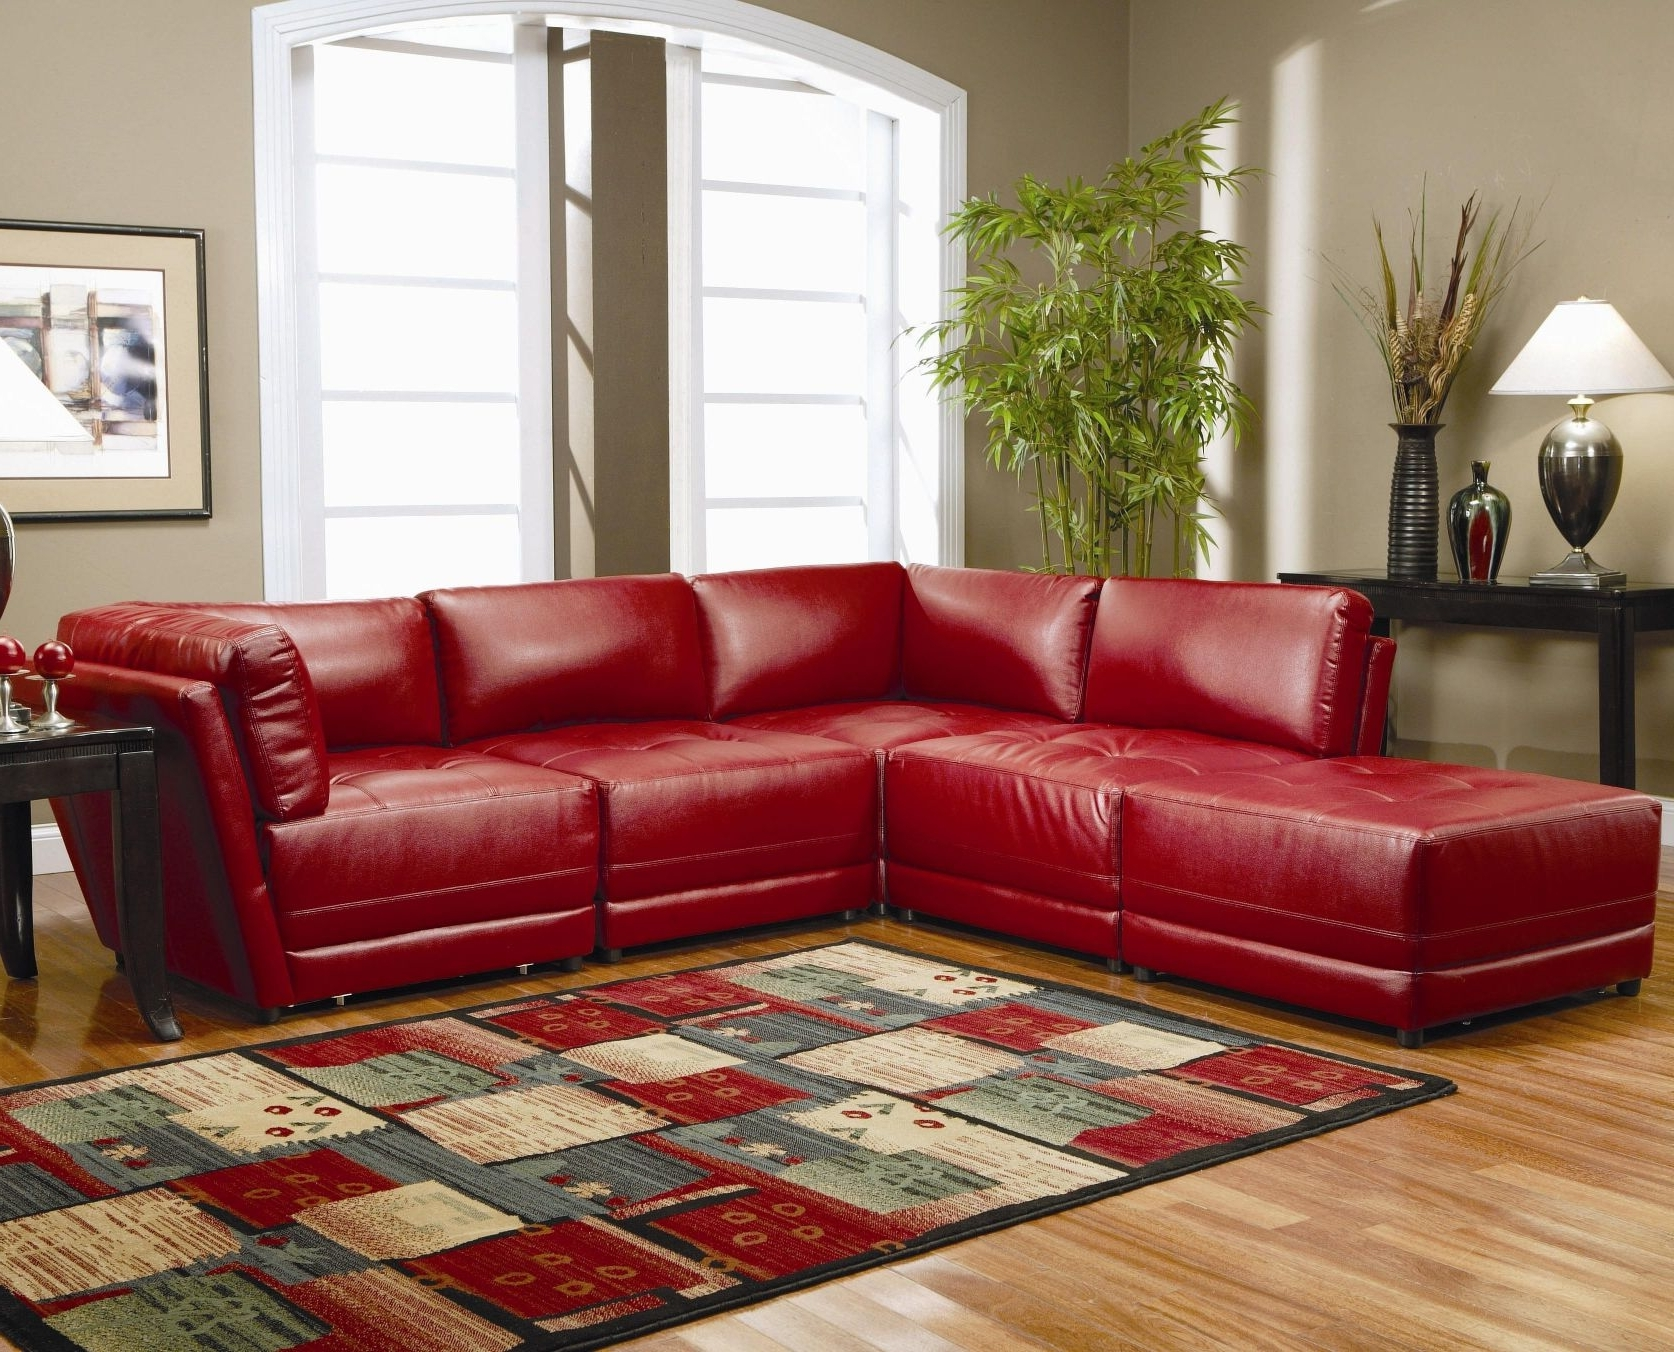 Most Recent Red Leather Couches For Living Room Inside Marvelous Warm Sectionalshaped Sofa Design